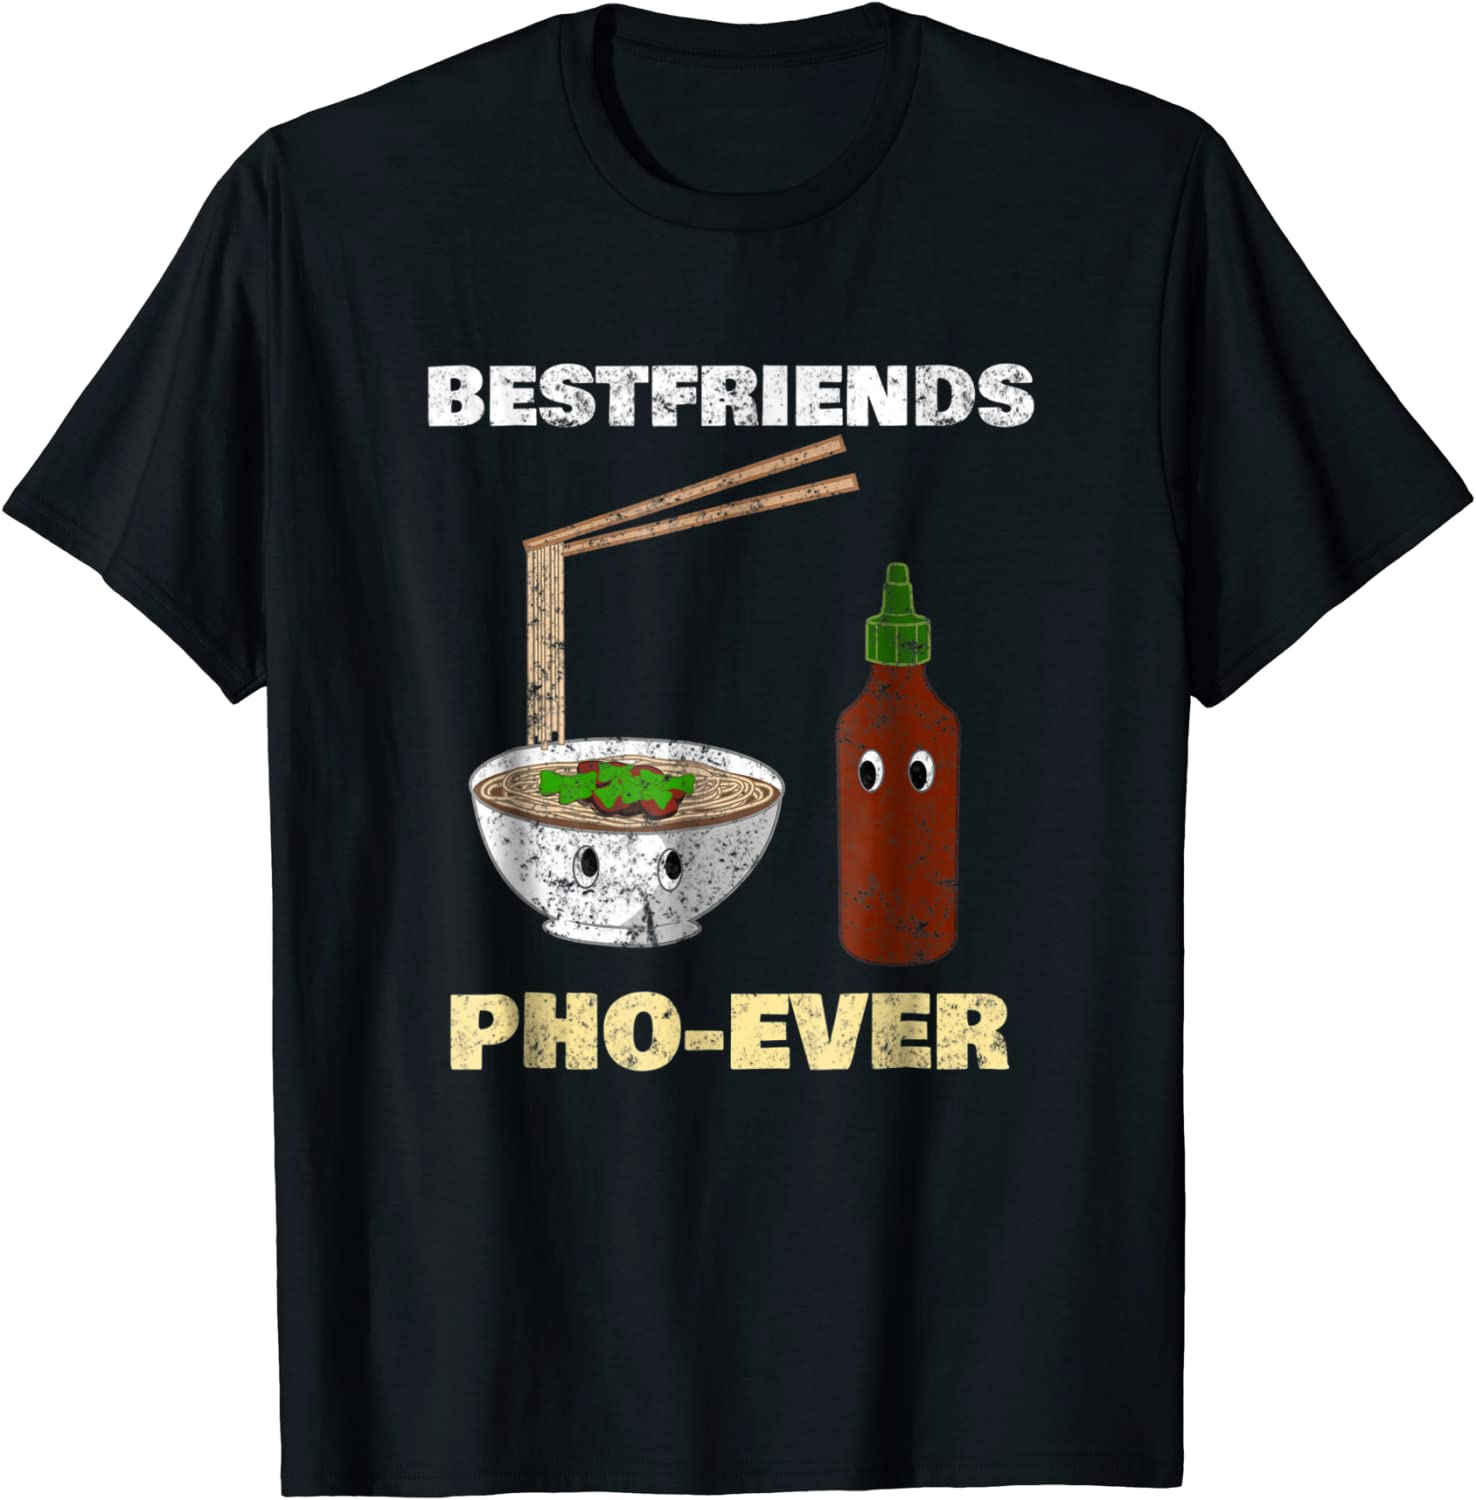 Best Friends Pho Ever T-Shirt Asian Food Distressed Tee